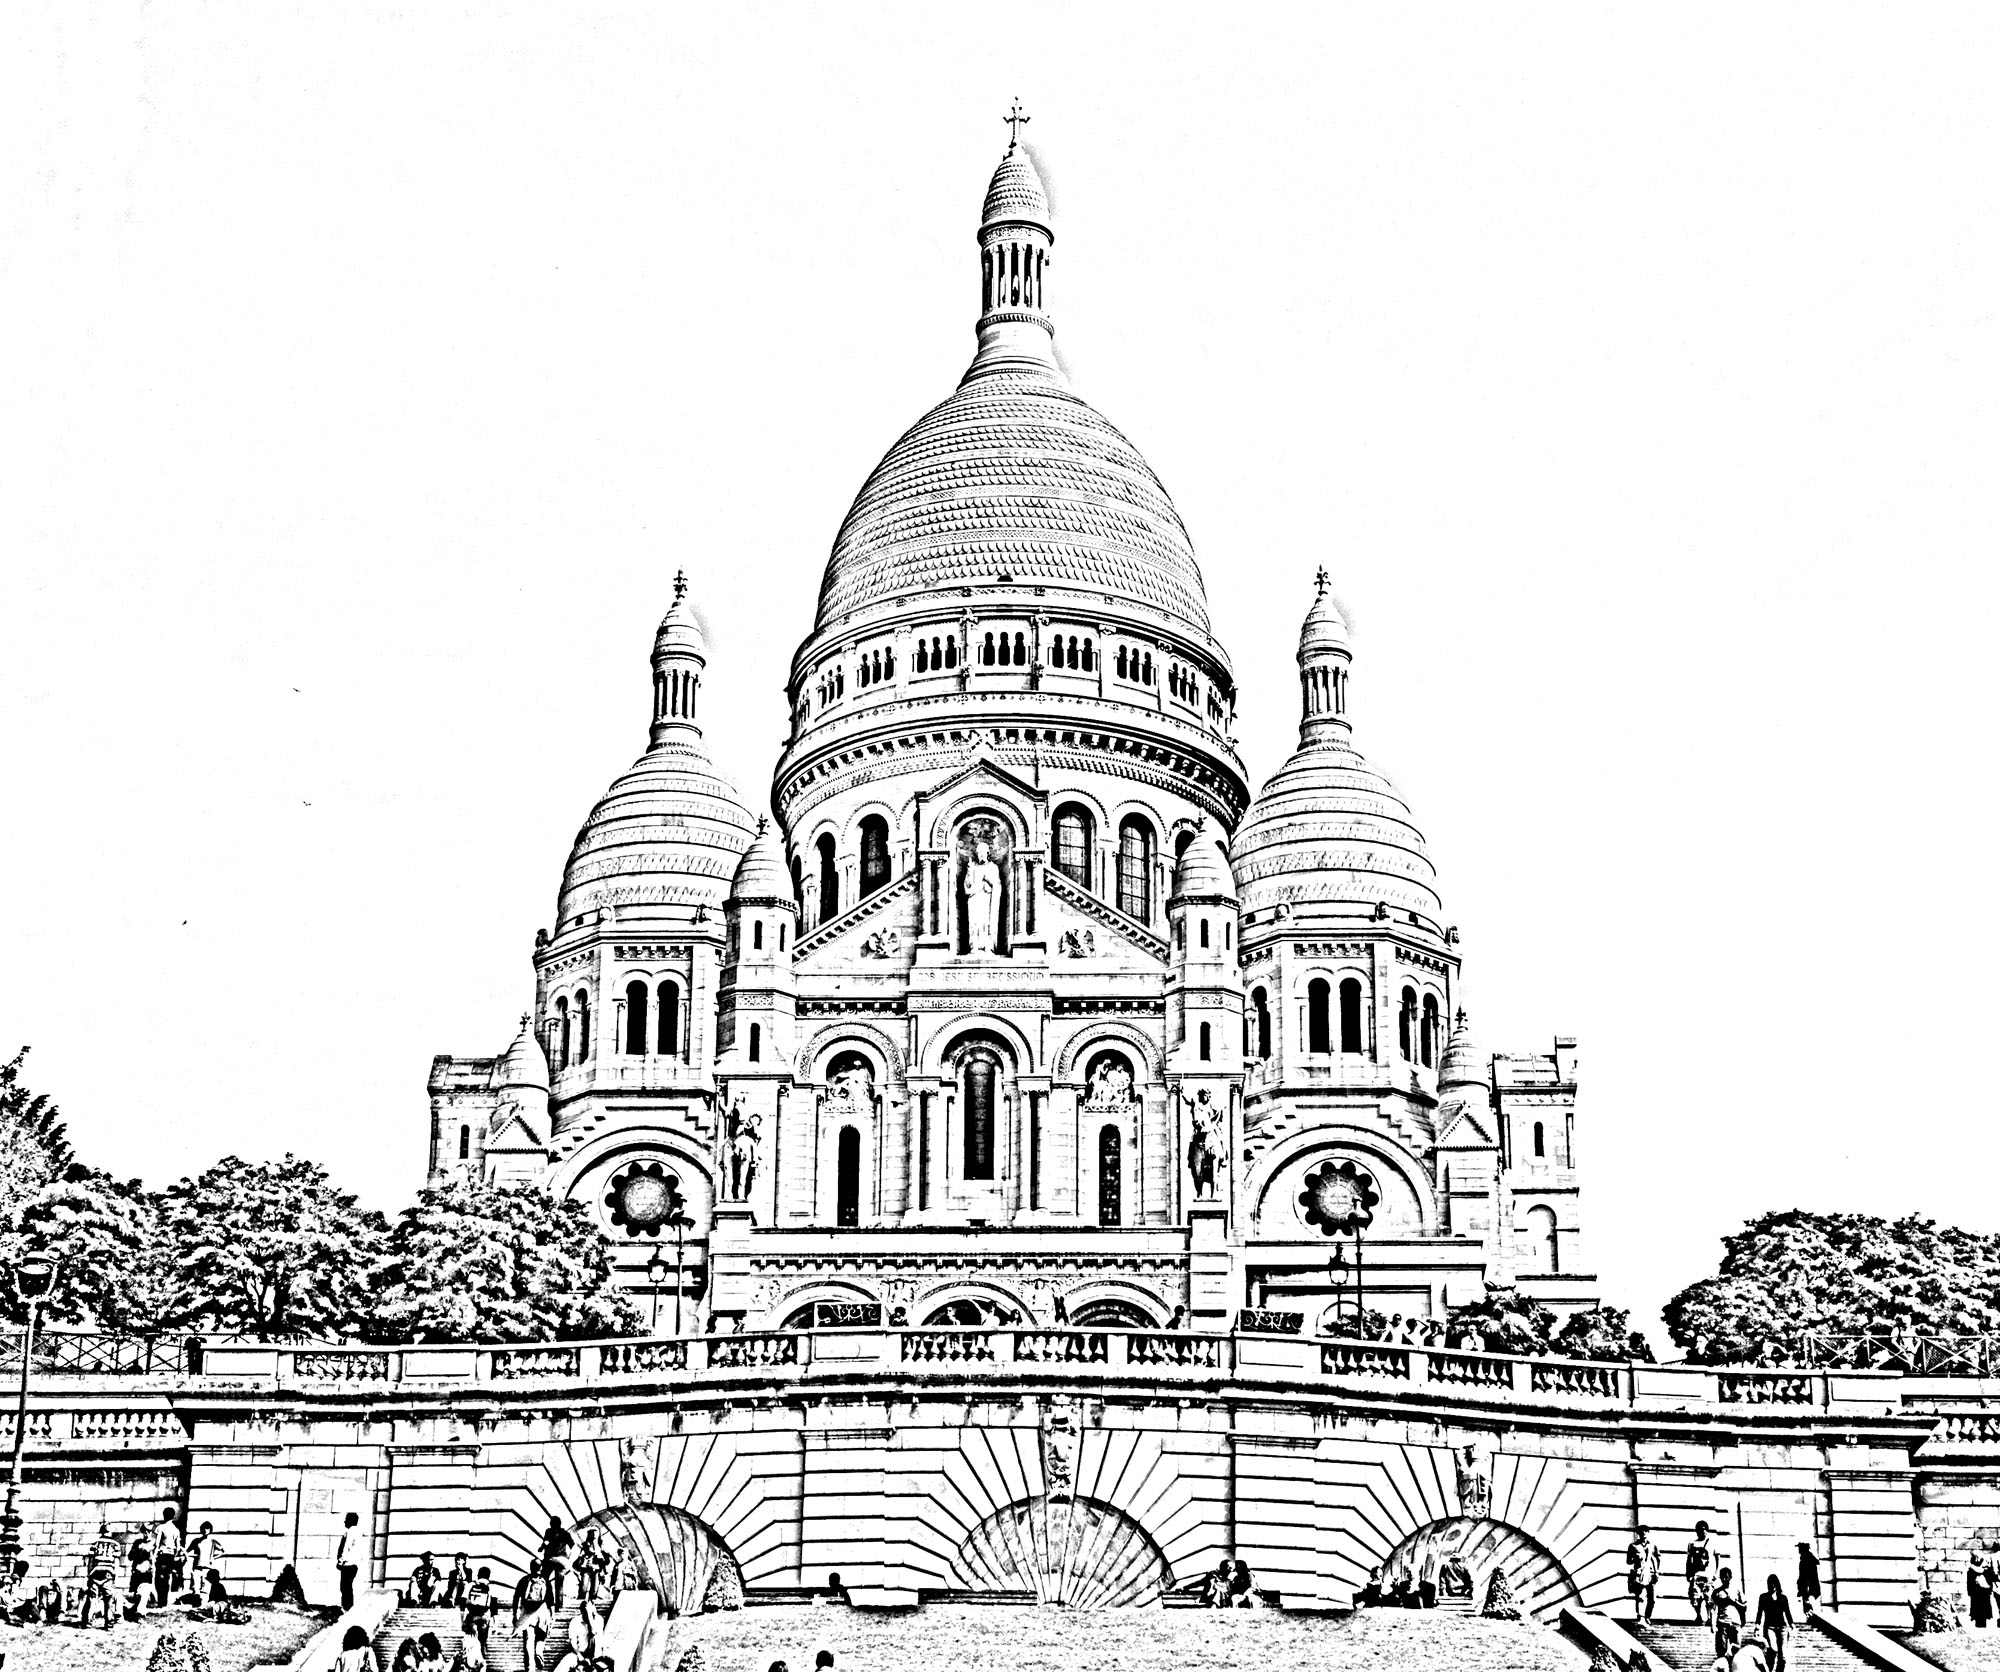 The Basilica of the Sacred Heart in Paris, transformed into a beautiful coloring page